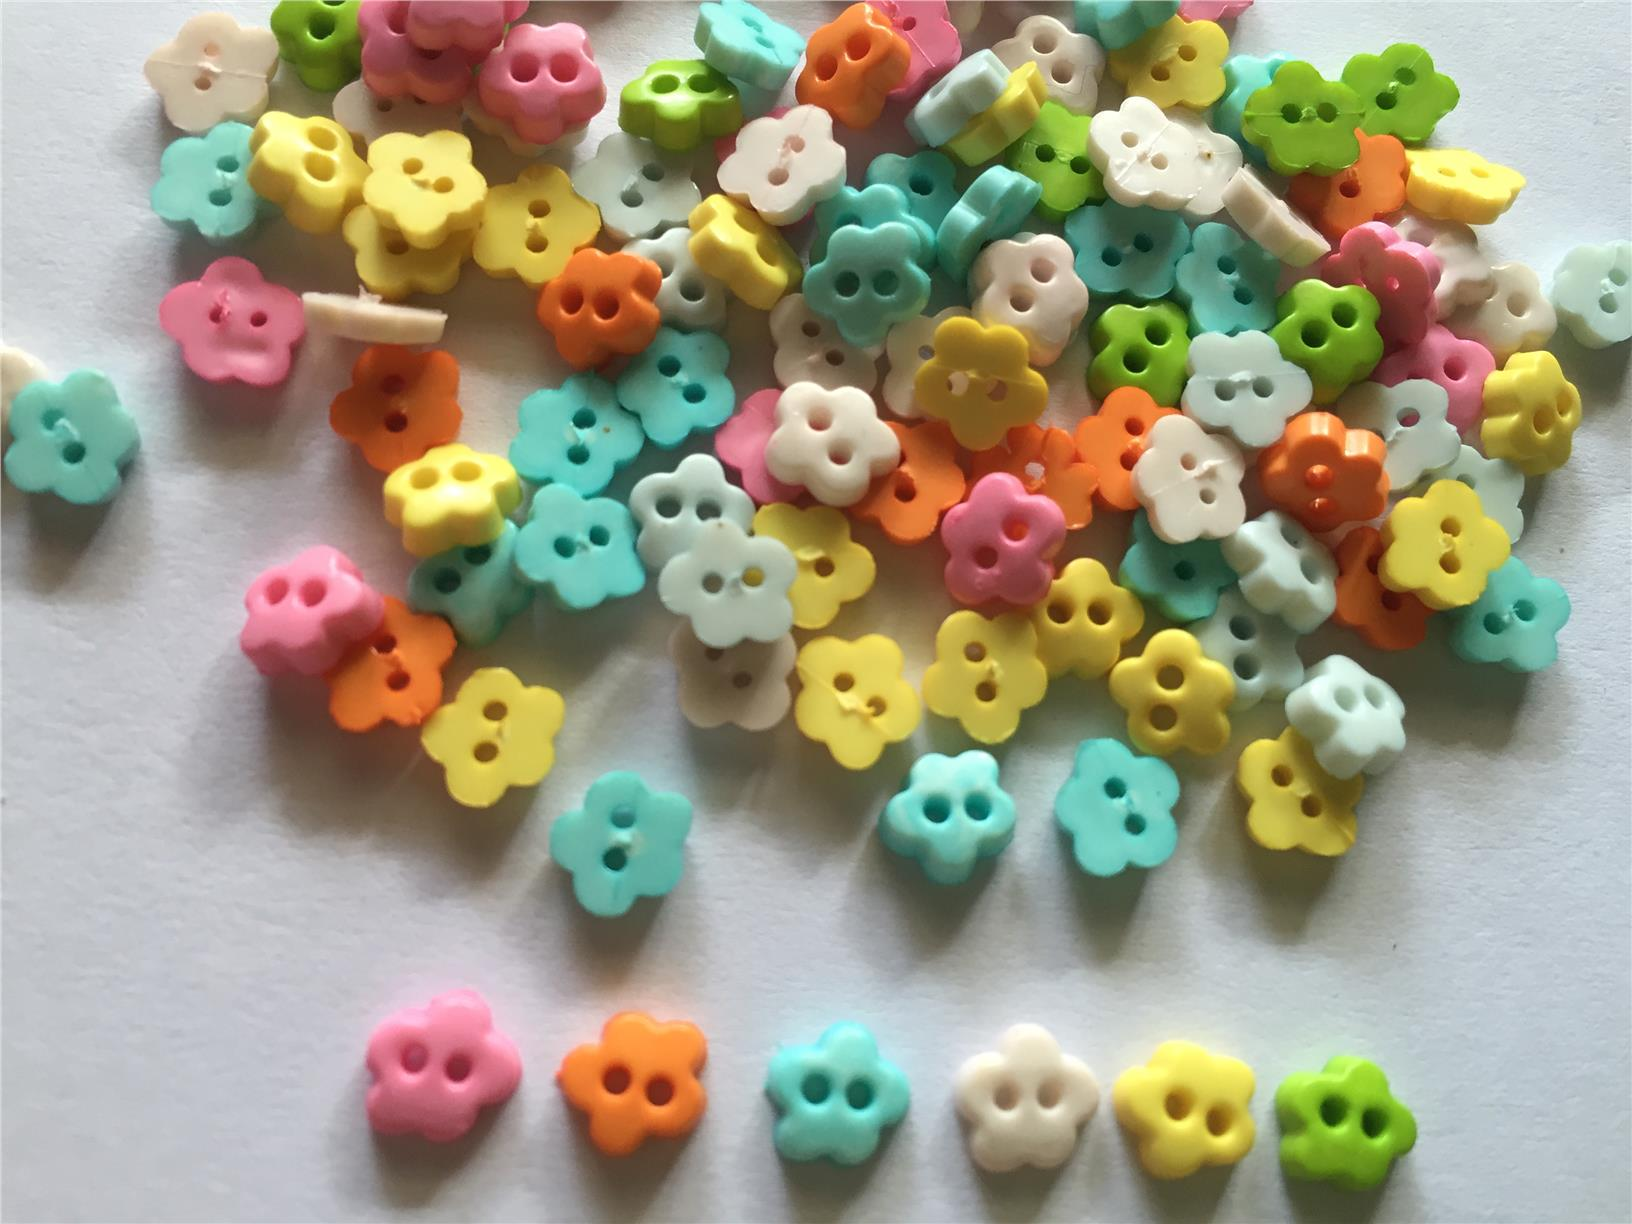 100 pcs cute tiny cherry blossom flower button size 7 mm mix pastel